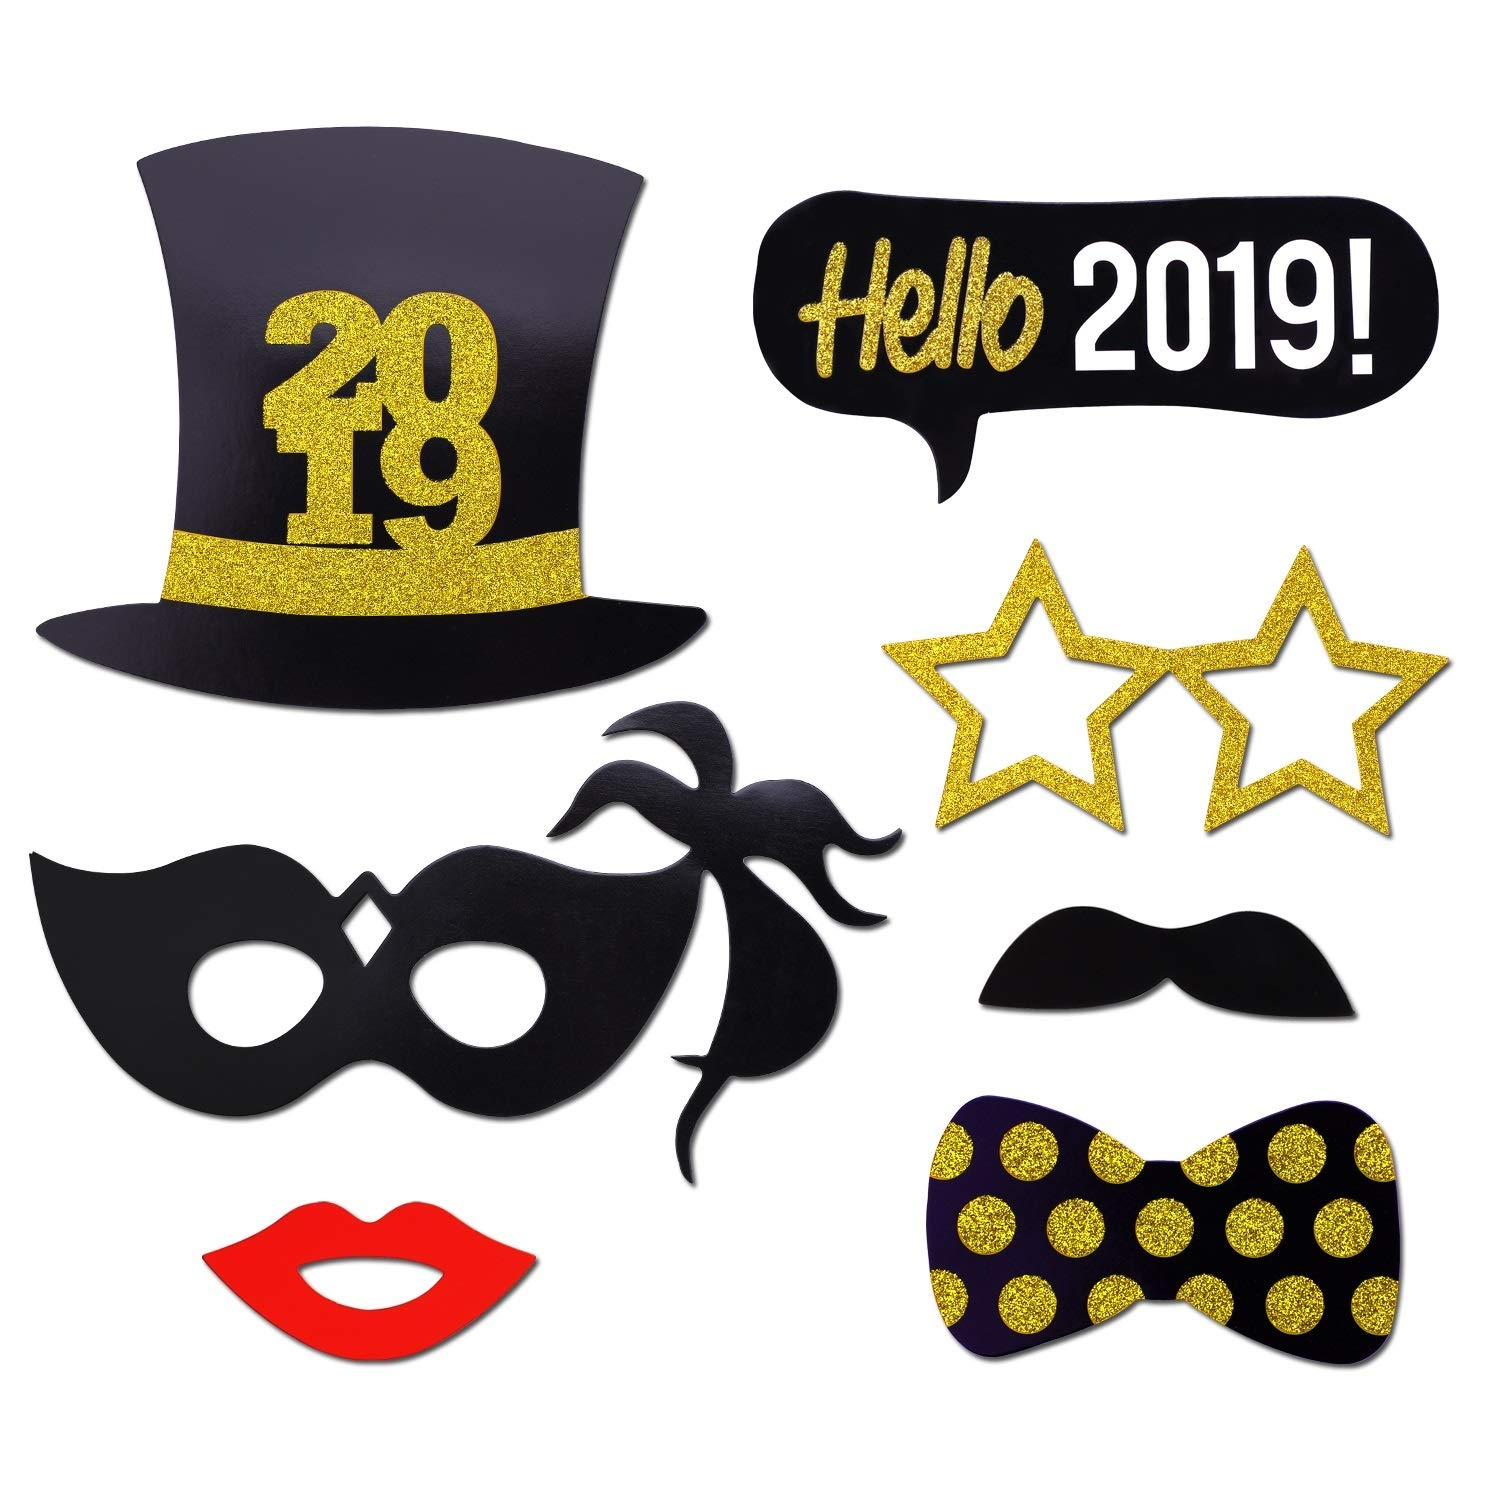 2019 New Years Photo Booth Props Kit21pcs Konsait Funny New Years